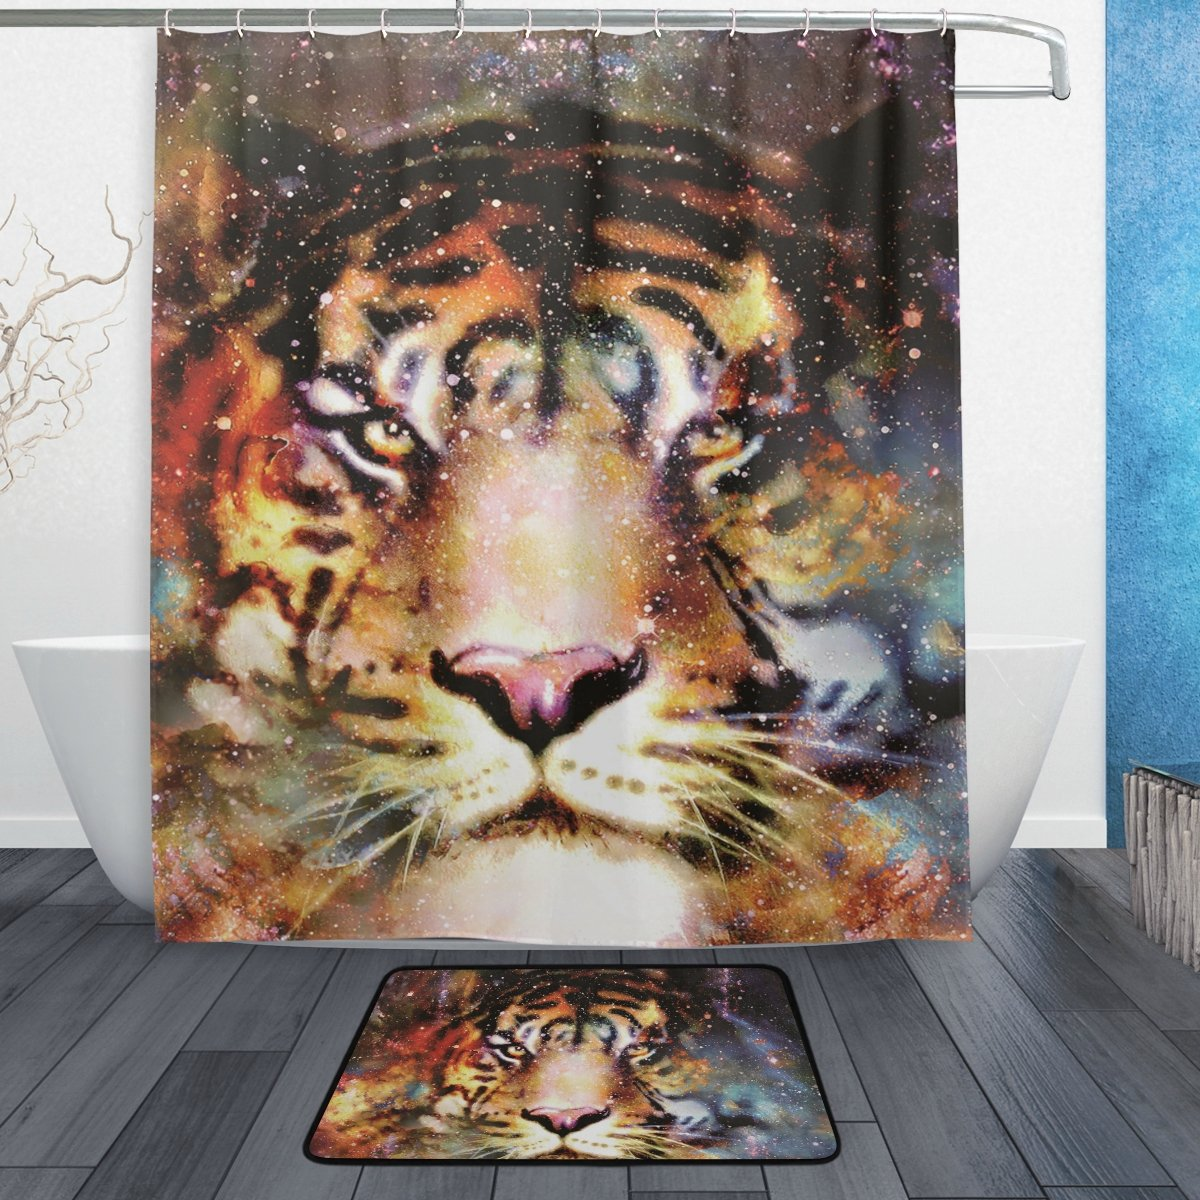 ALAZA Tiger Shower Curtain Galaxy Magical Beast Polyester Fabric Bathroom Curtain Set with Mats Rugs-12 Hooks by ALAZA